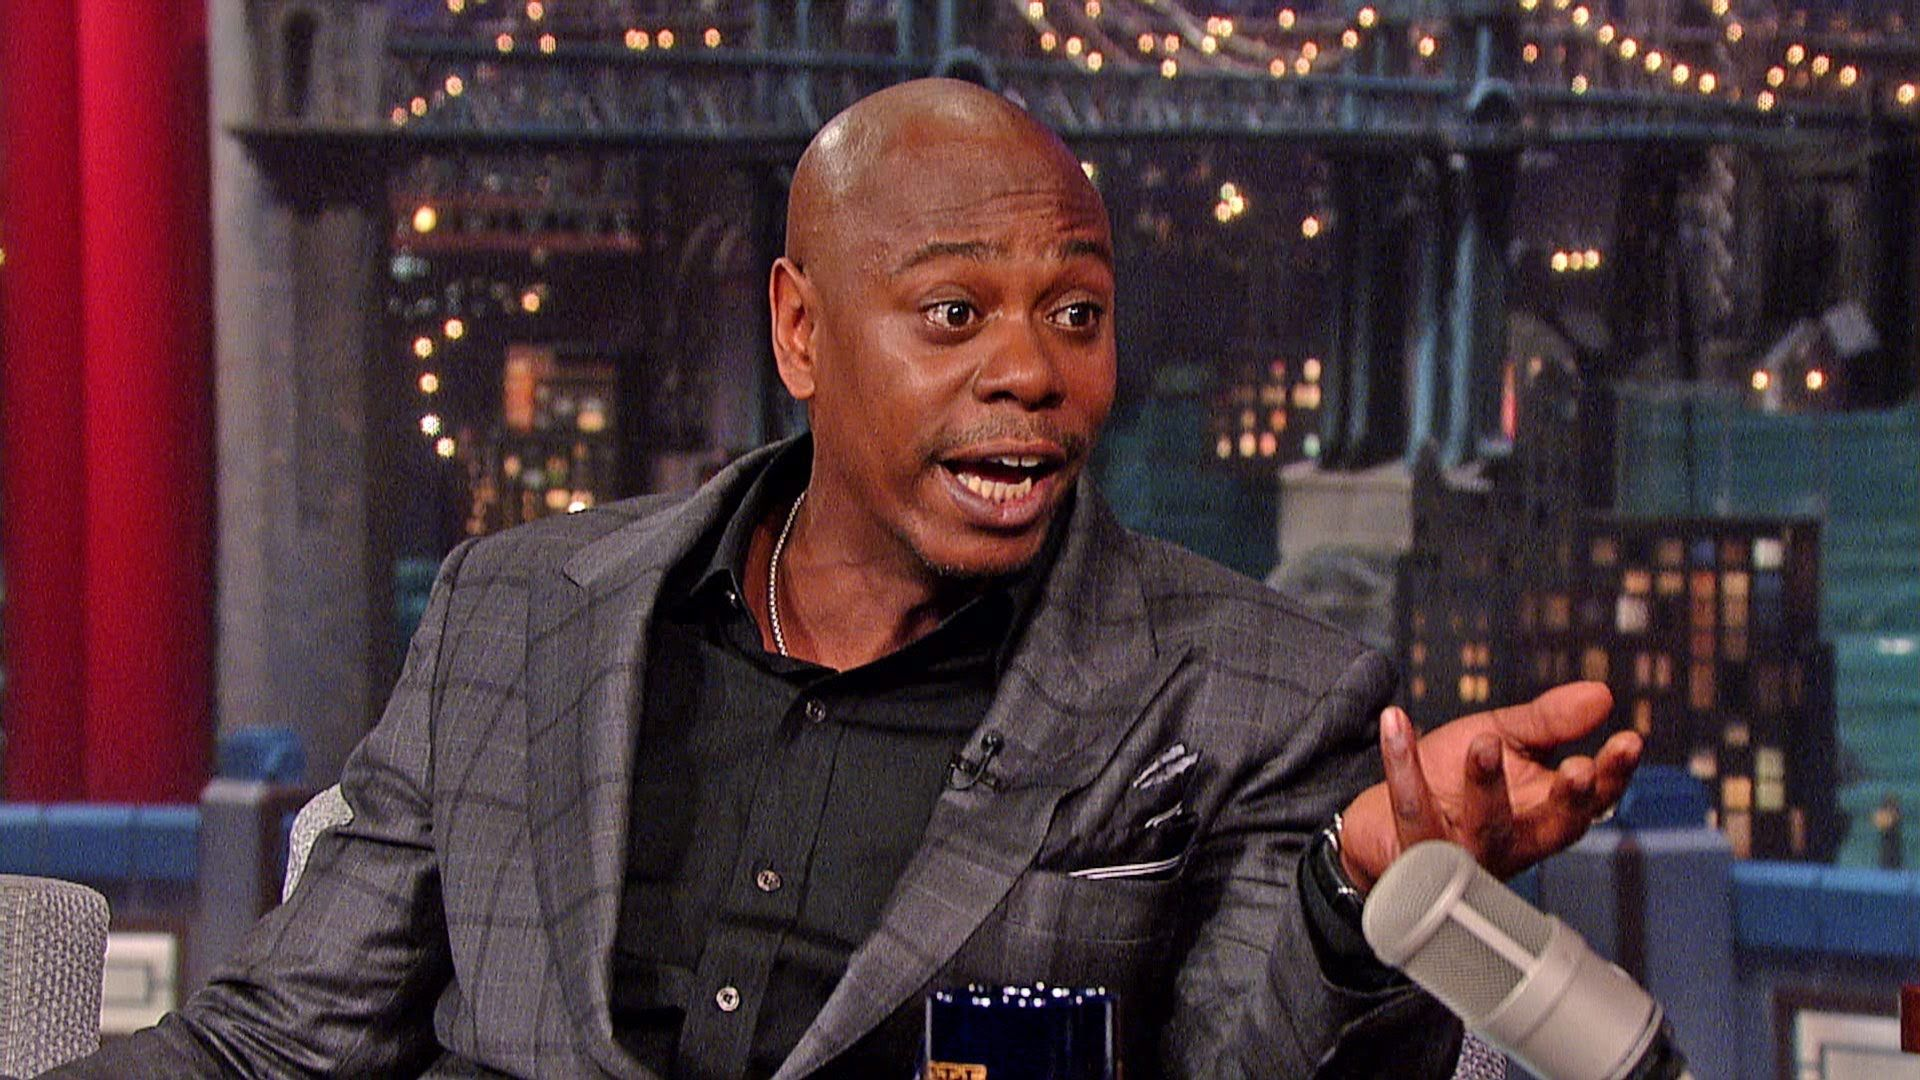 Ohio authorities confirm dave chappelle was not involved in fatal shooting near his home